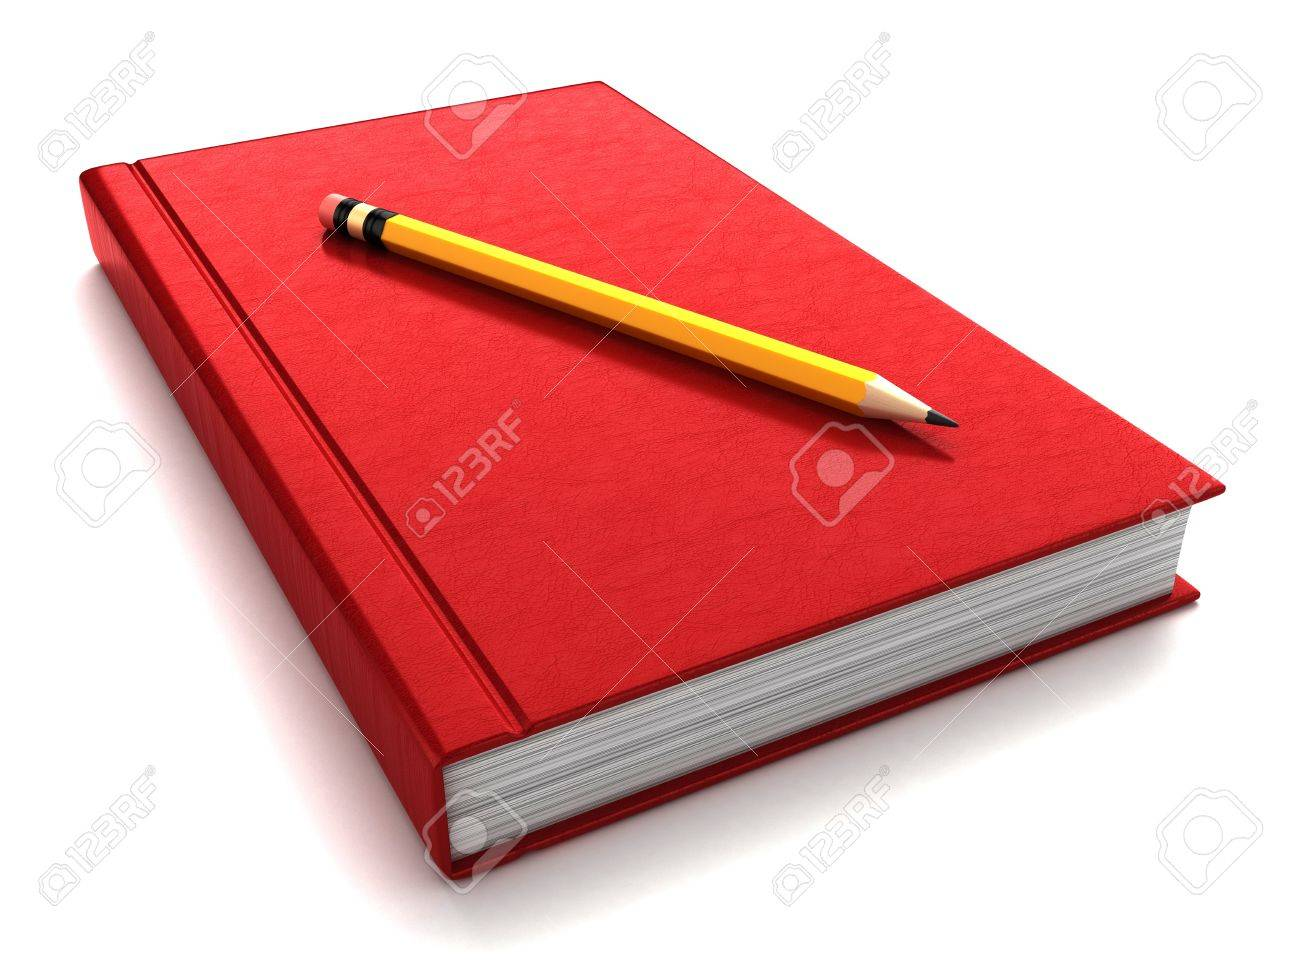 3d render of a thick red book with pencil on top Stock Photo - 15475109